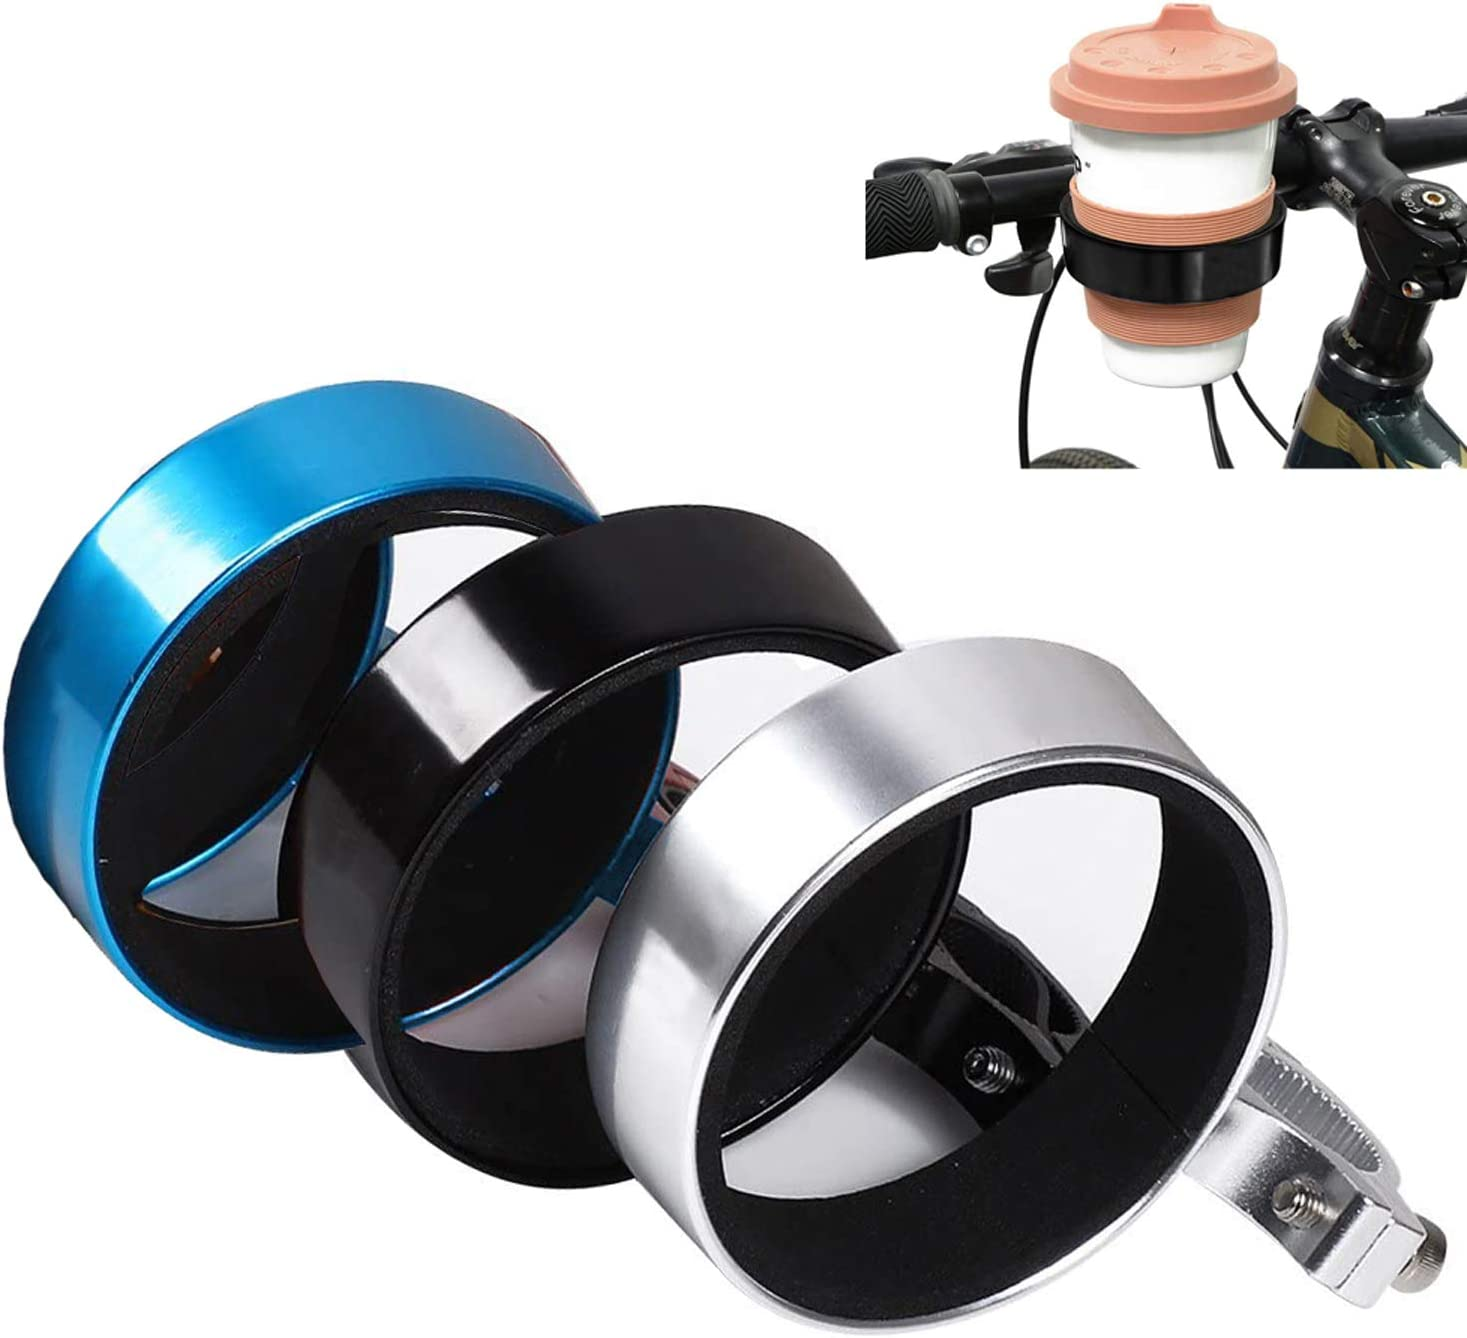 Durable Lightweight Drinks Beverage Cups Bracket for Commuters Rode Mountain Cycling FINGER TEN Bike Cup Holder Handlebar Cruiser Coffee Water Bottle Cages Aluminum Alloy Value 2 Pack